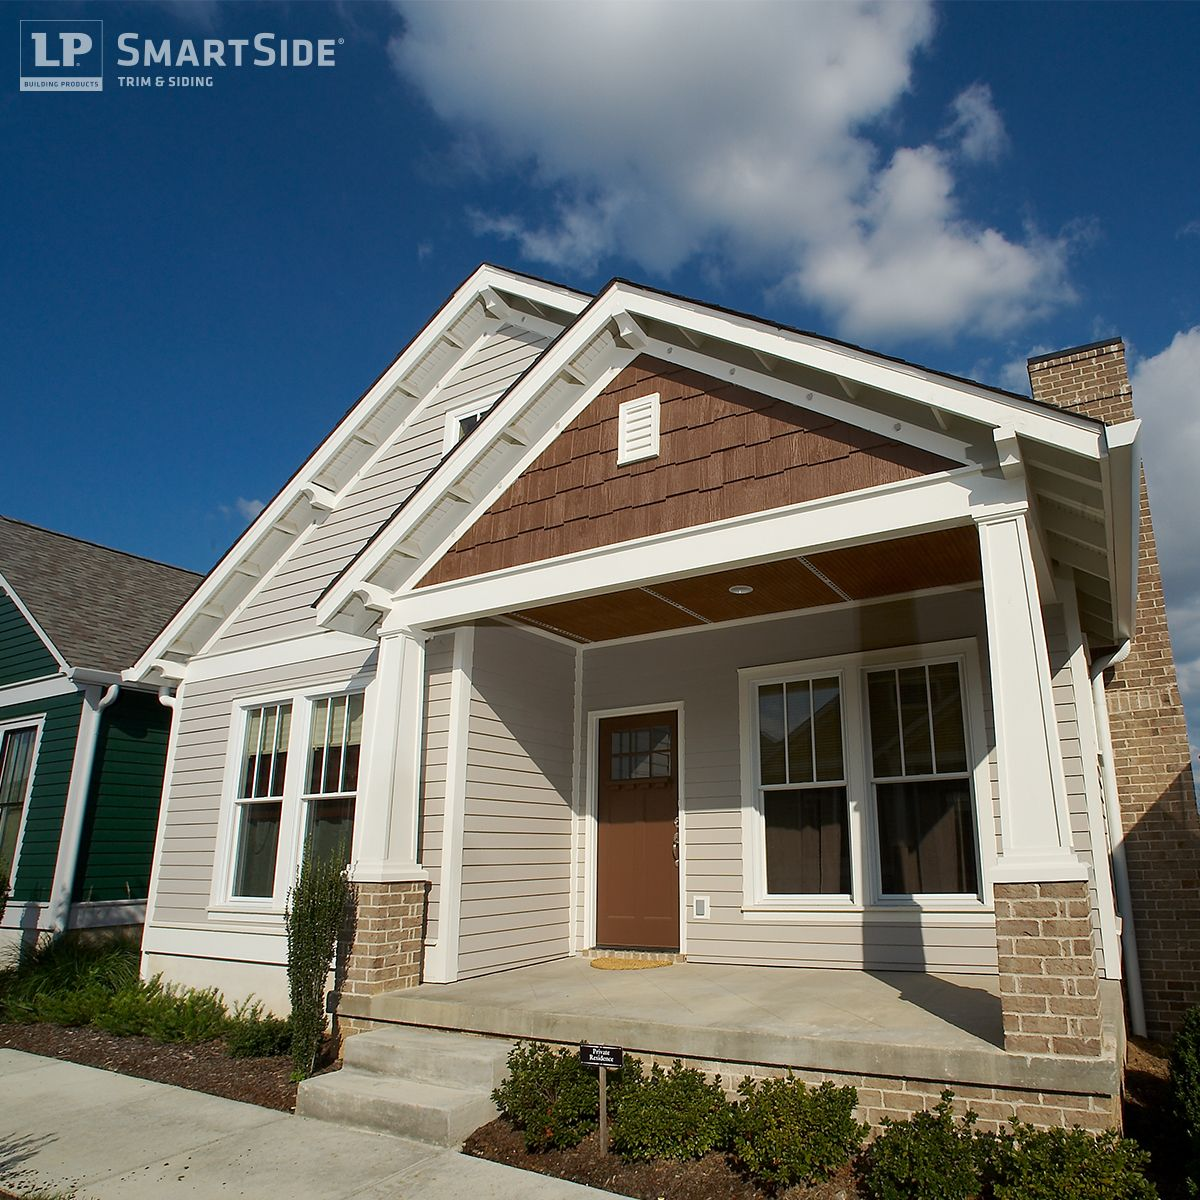 this home features lp smartside cedar shakes as a